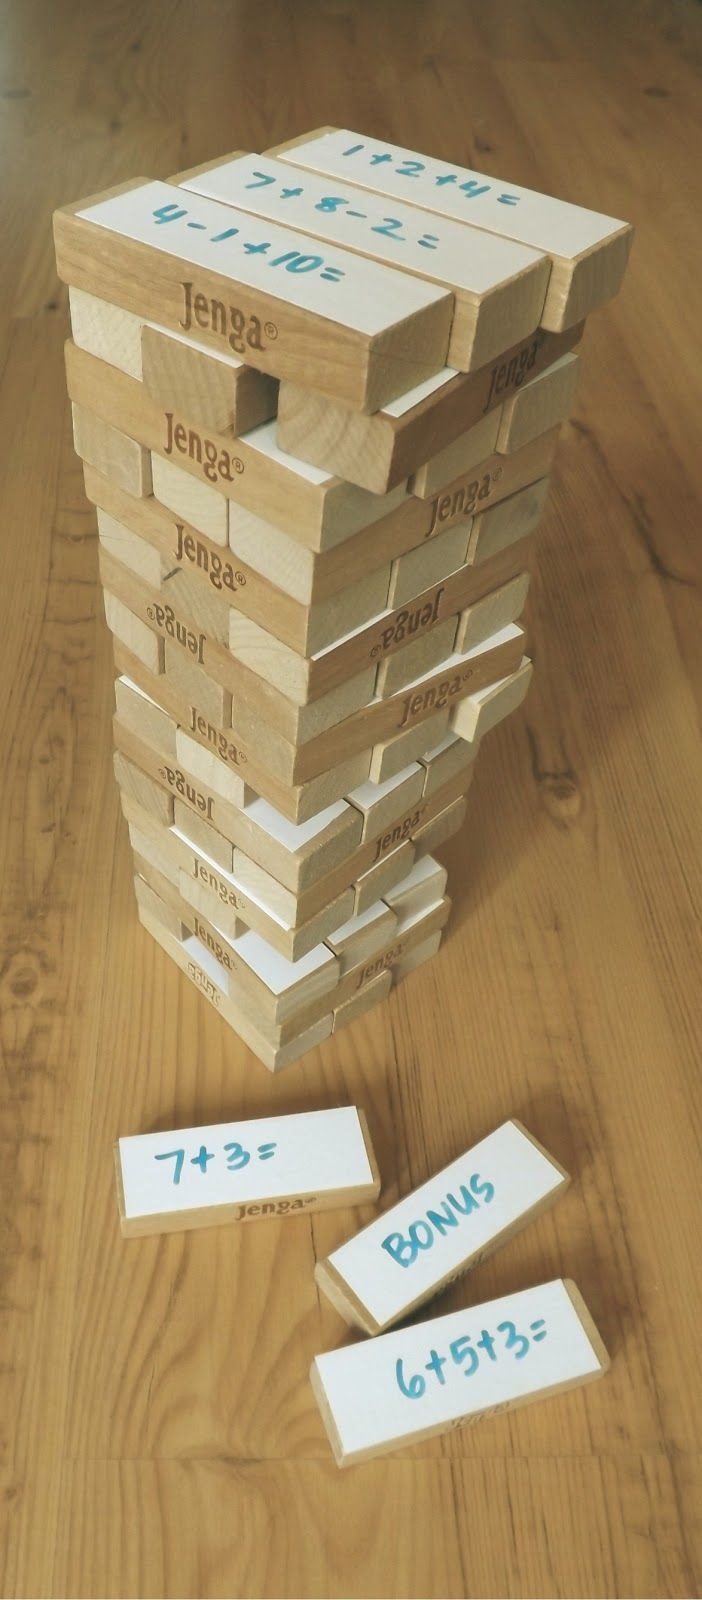 Shake things up with your test prep this month! Use DIY Jenga to practice and review.